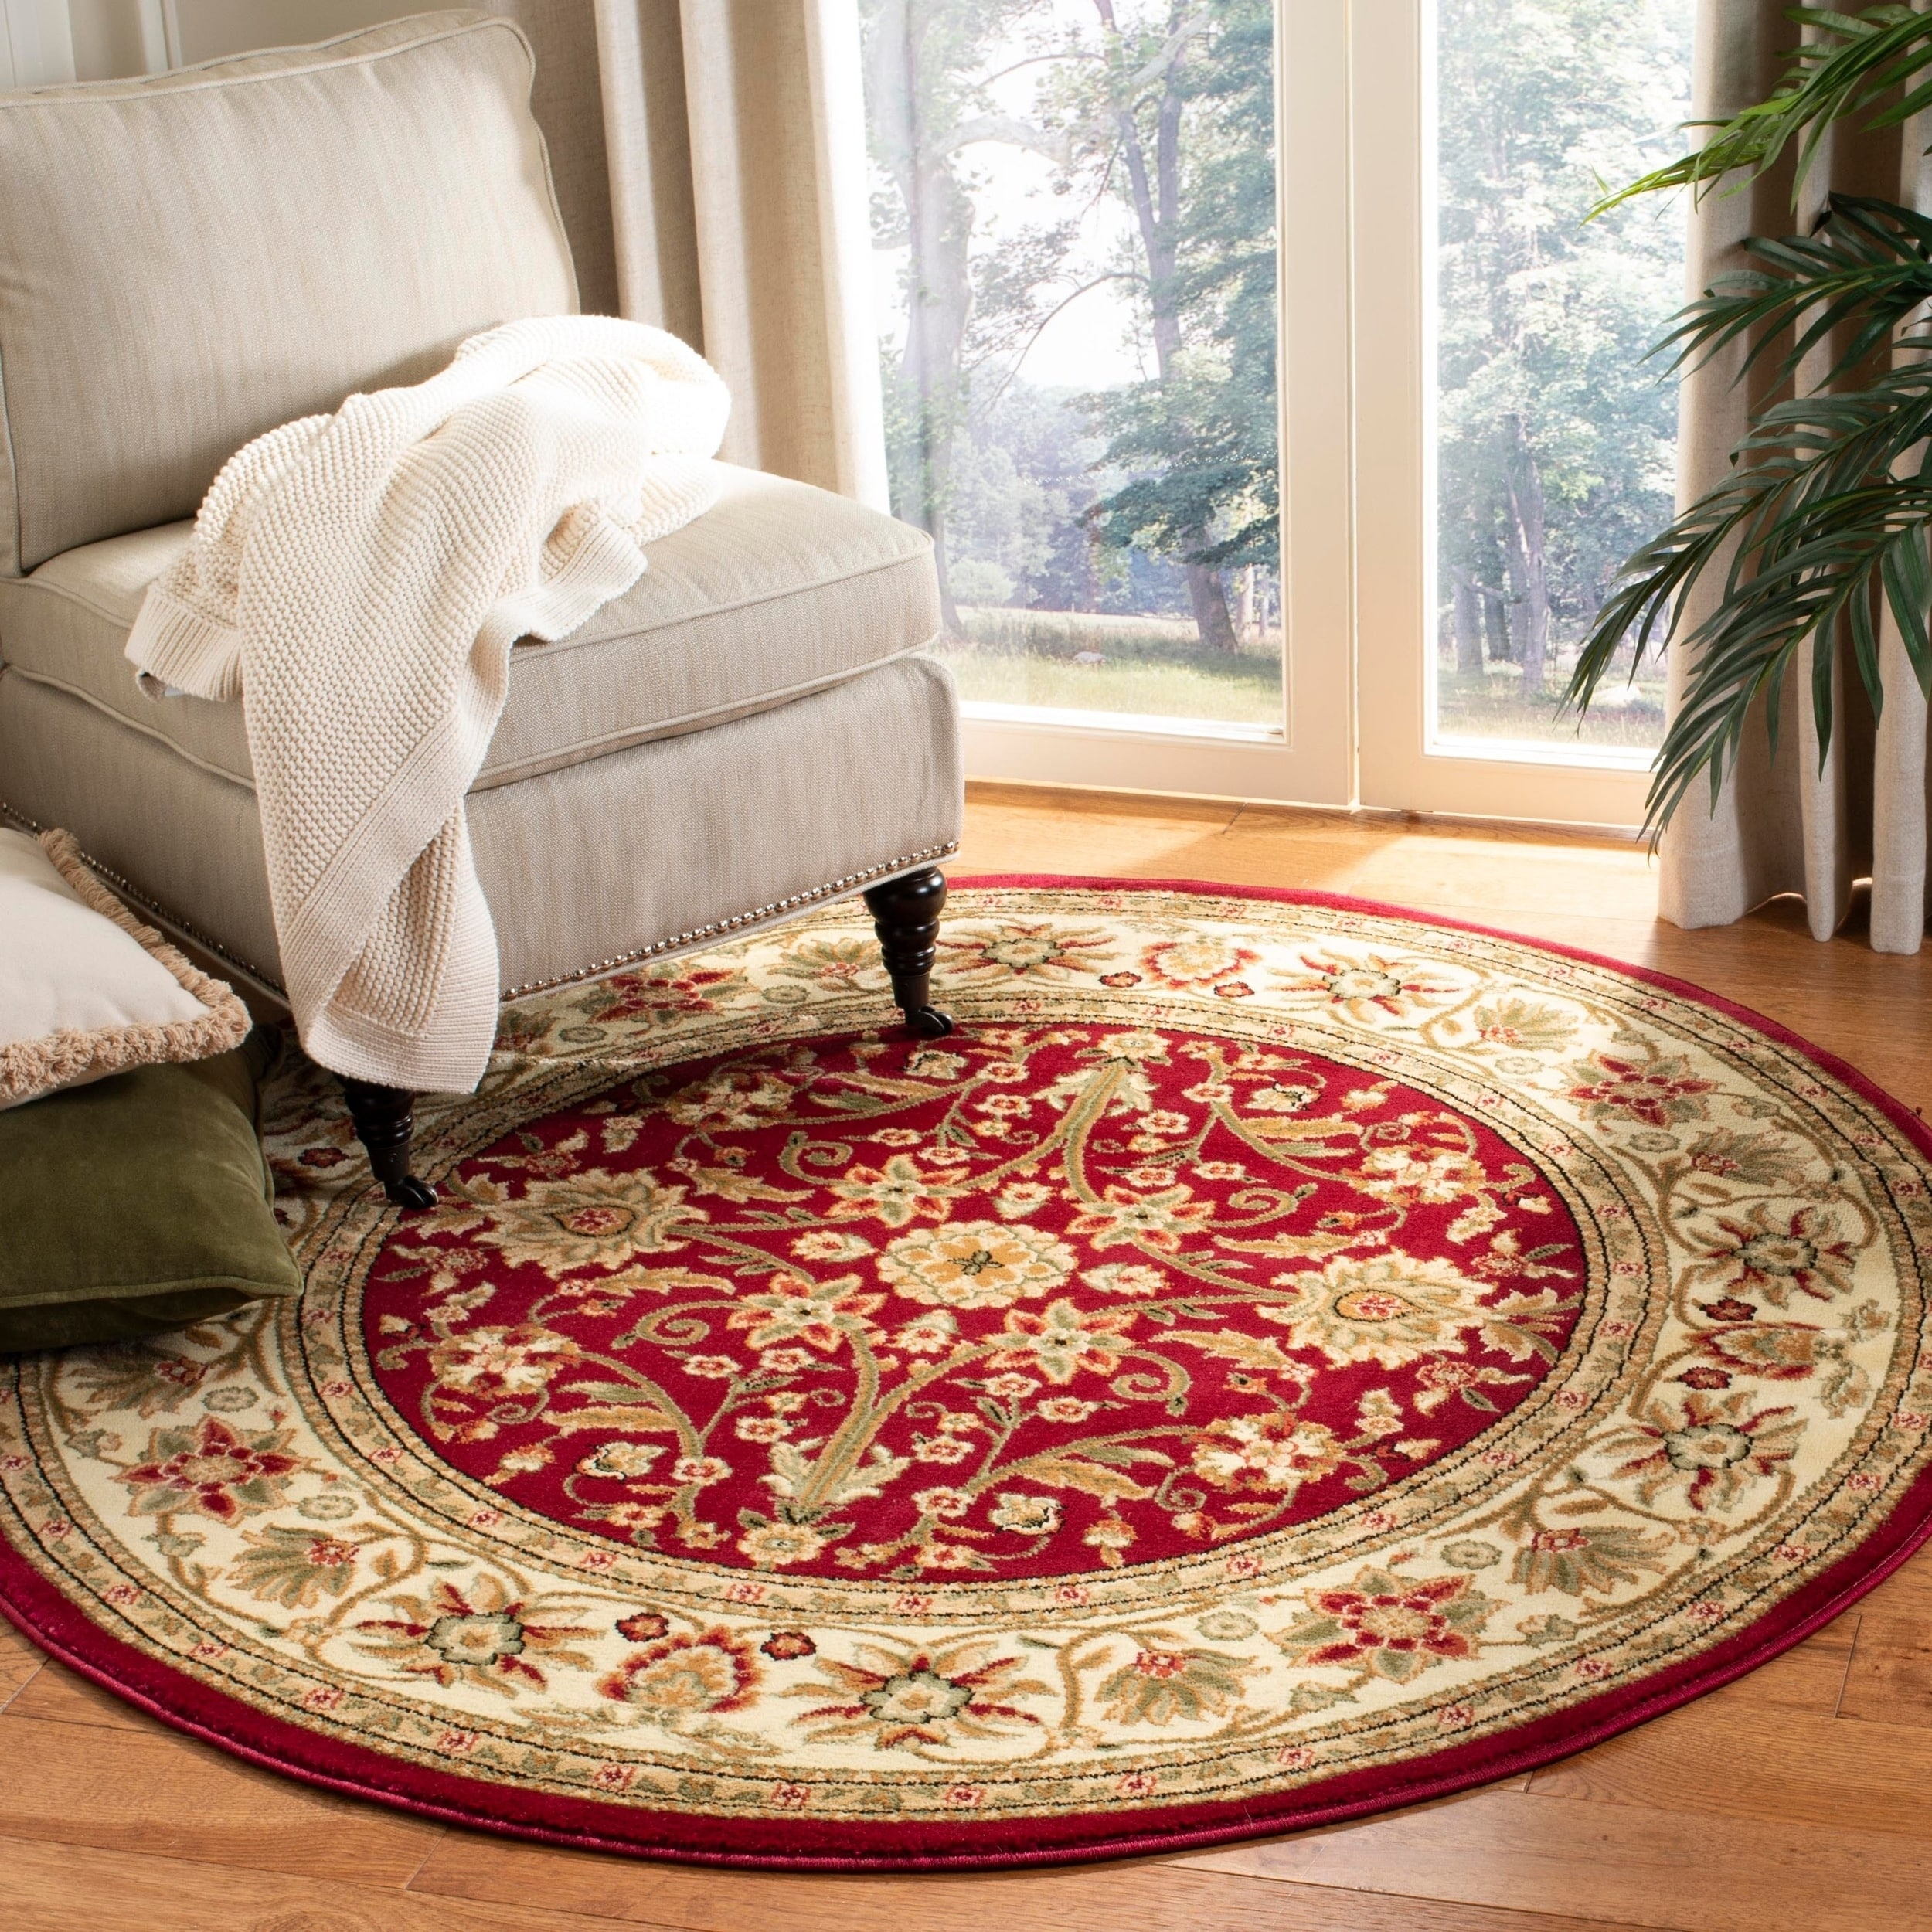 Area Rugs Runners Pads Red Traditional Living Room